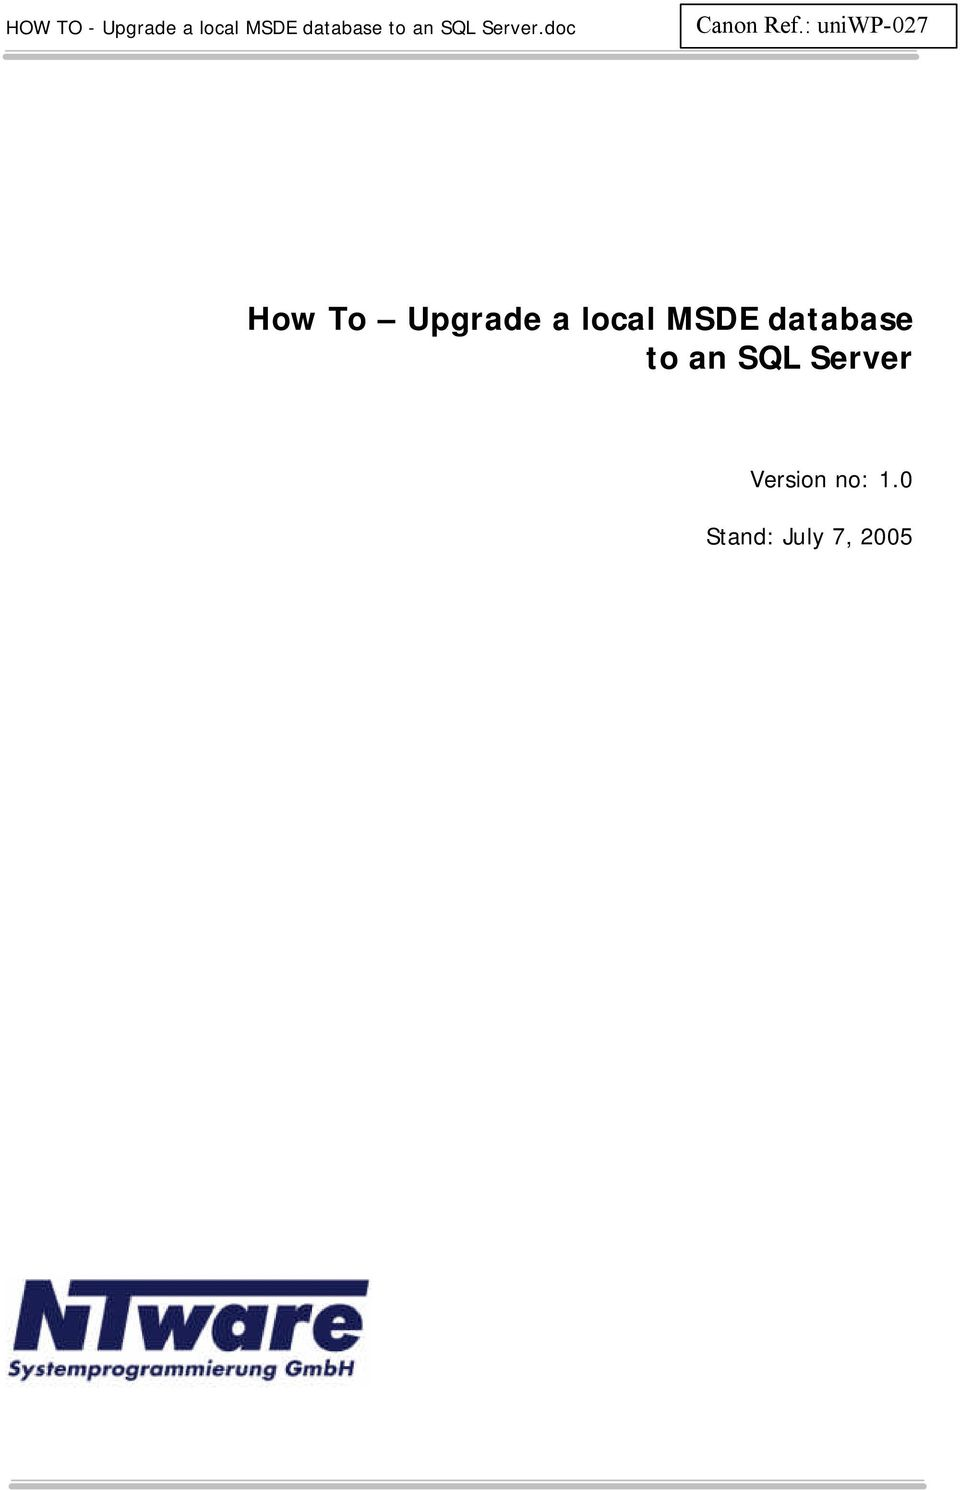 a local MSDE database to an